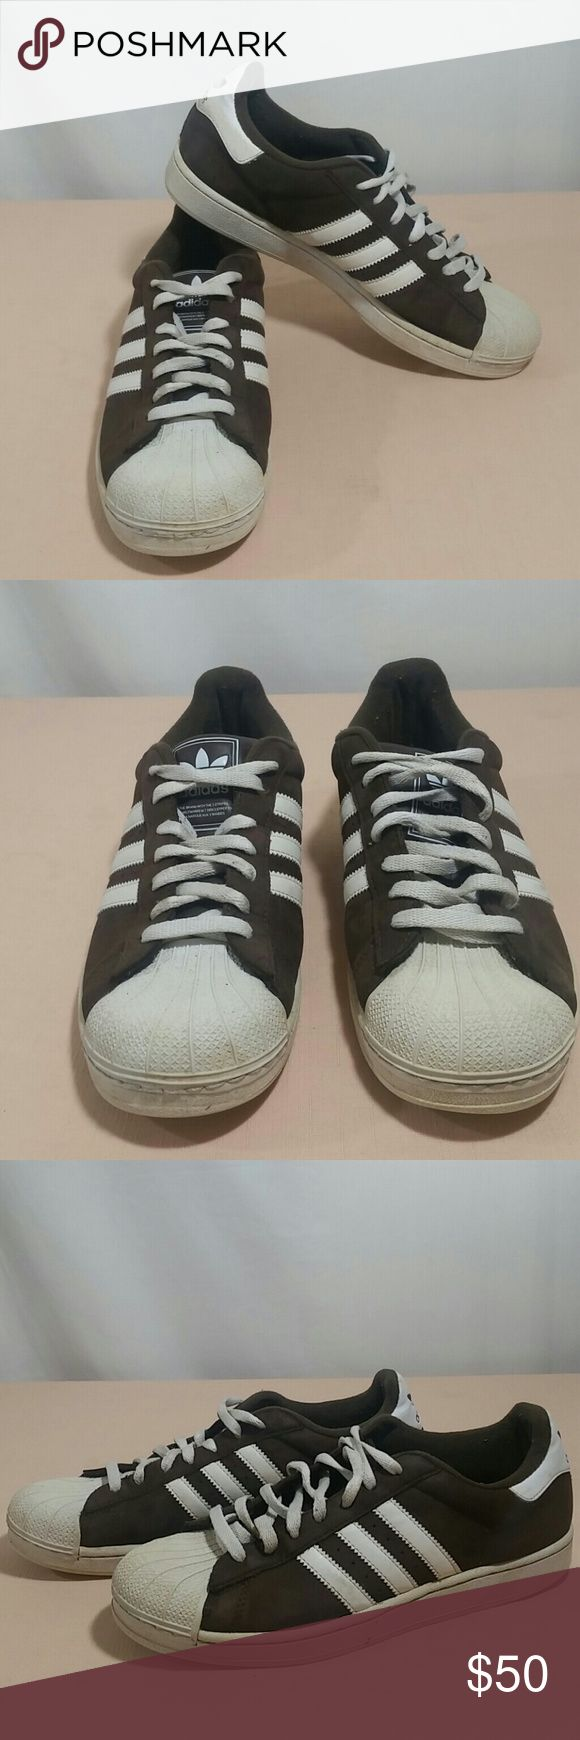 ADIDAS ORIGINAL SUPERSTAR Sneakers Size 9 1/2 Stylish ADIDAS ORIGINAL SUPERSTAR Sneakers.   This pair of Sneakers with brown waxed suede,  and rubber shell tops are classic and comfortable.   This pair of Sneakers are a size 9 1/2.  This pair of ADIDAS ORIGINAL SUPERSTAR Sneakers are in very good condition. Adidas Shoes Sneakers